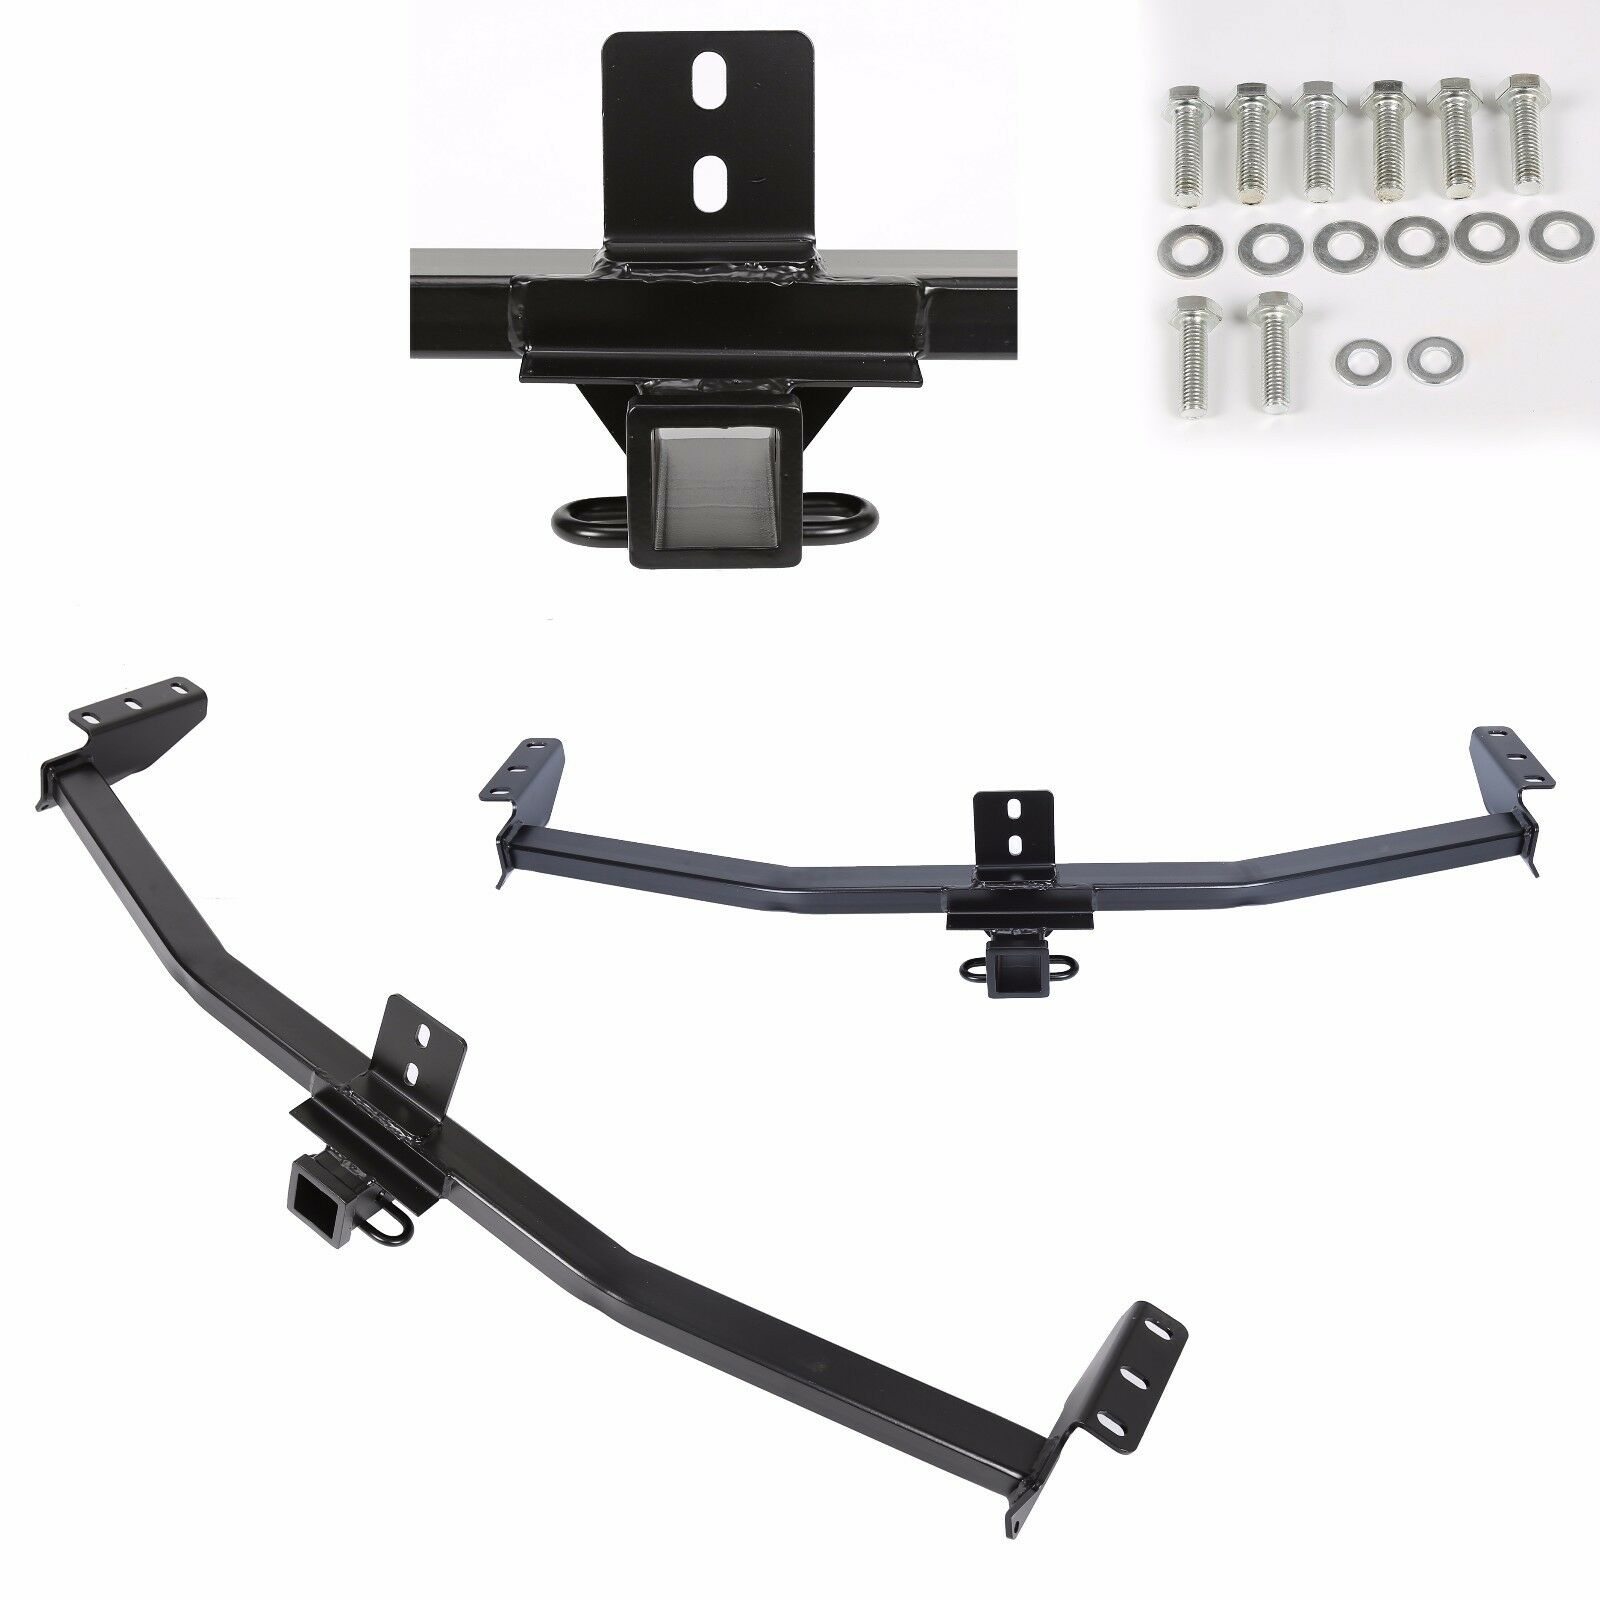 CLASS TRAILER Hitch Tow Receiver For Acura MDX - Acura mdx tow hitch